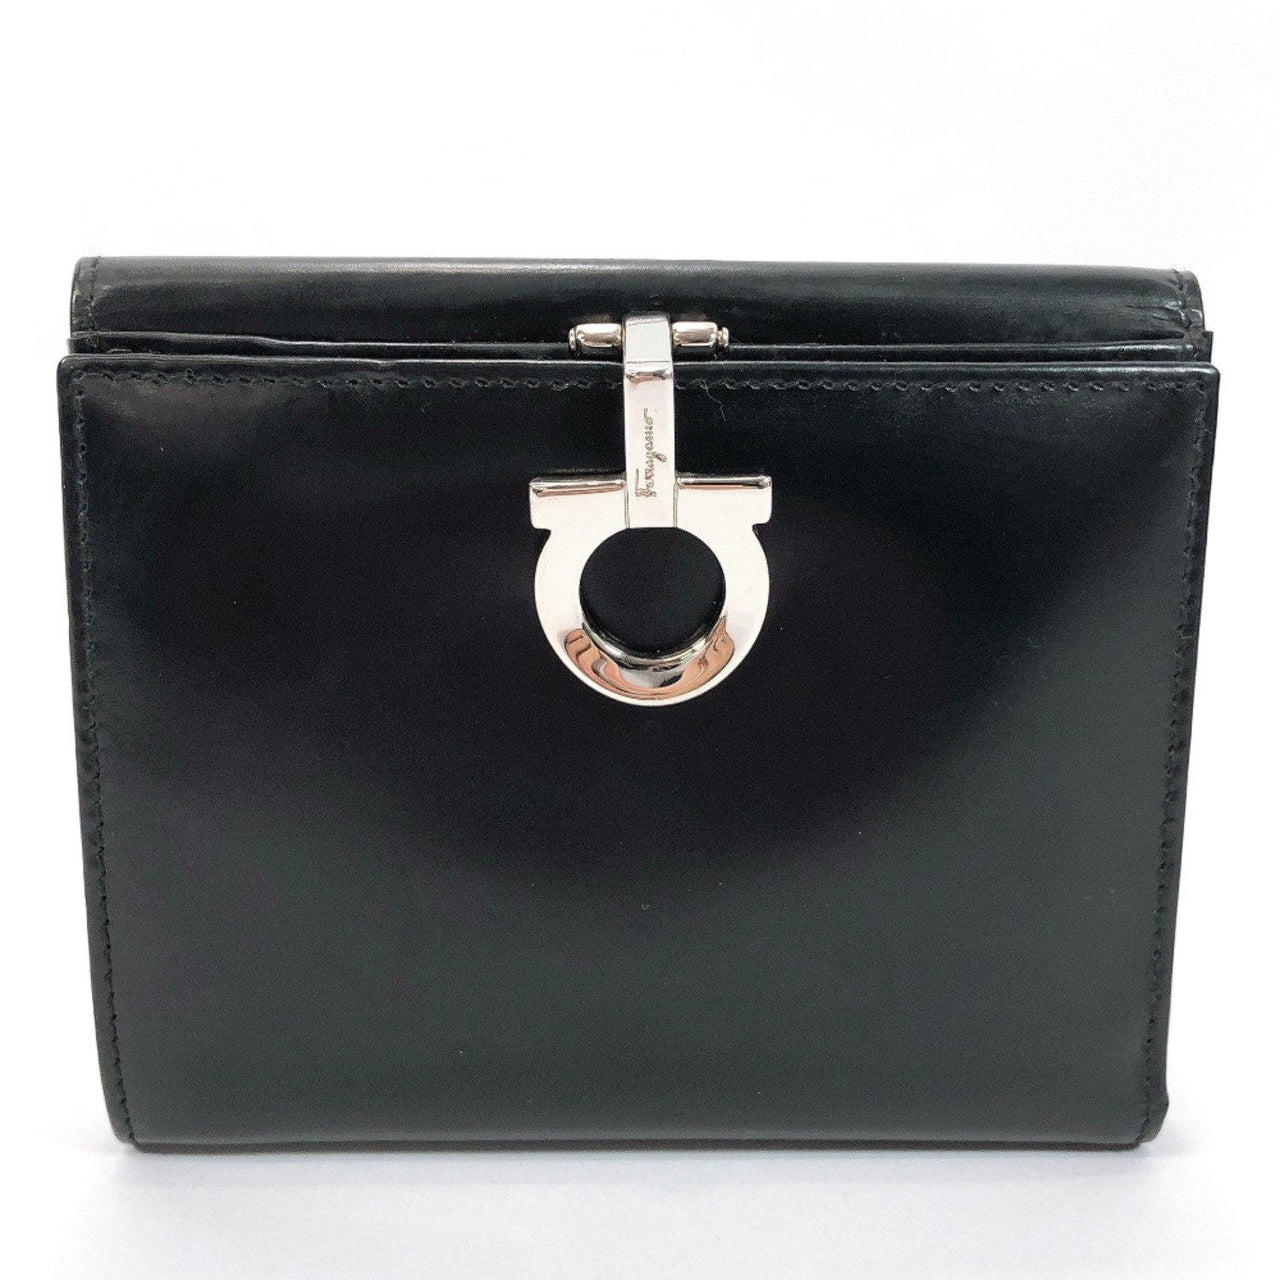 Salvatore Ferragamo wallet AQ-221203 Gancini Patent leather black Women Used